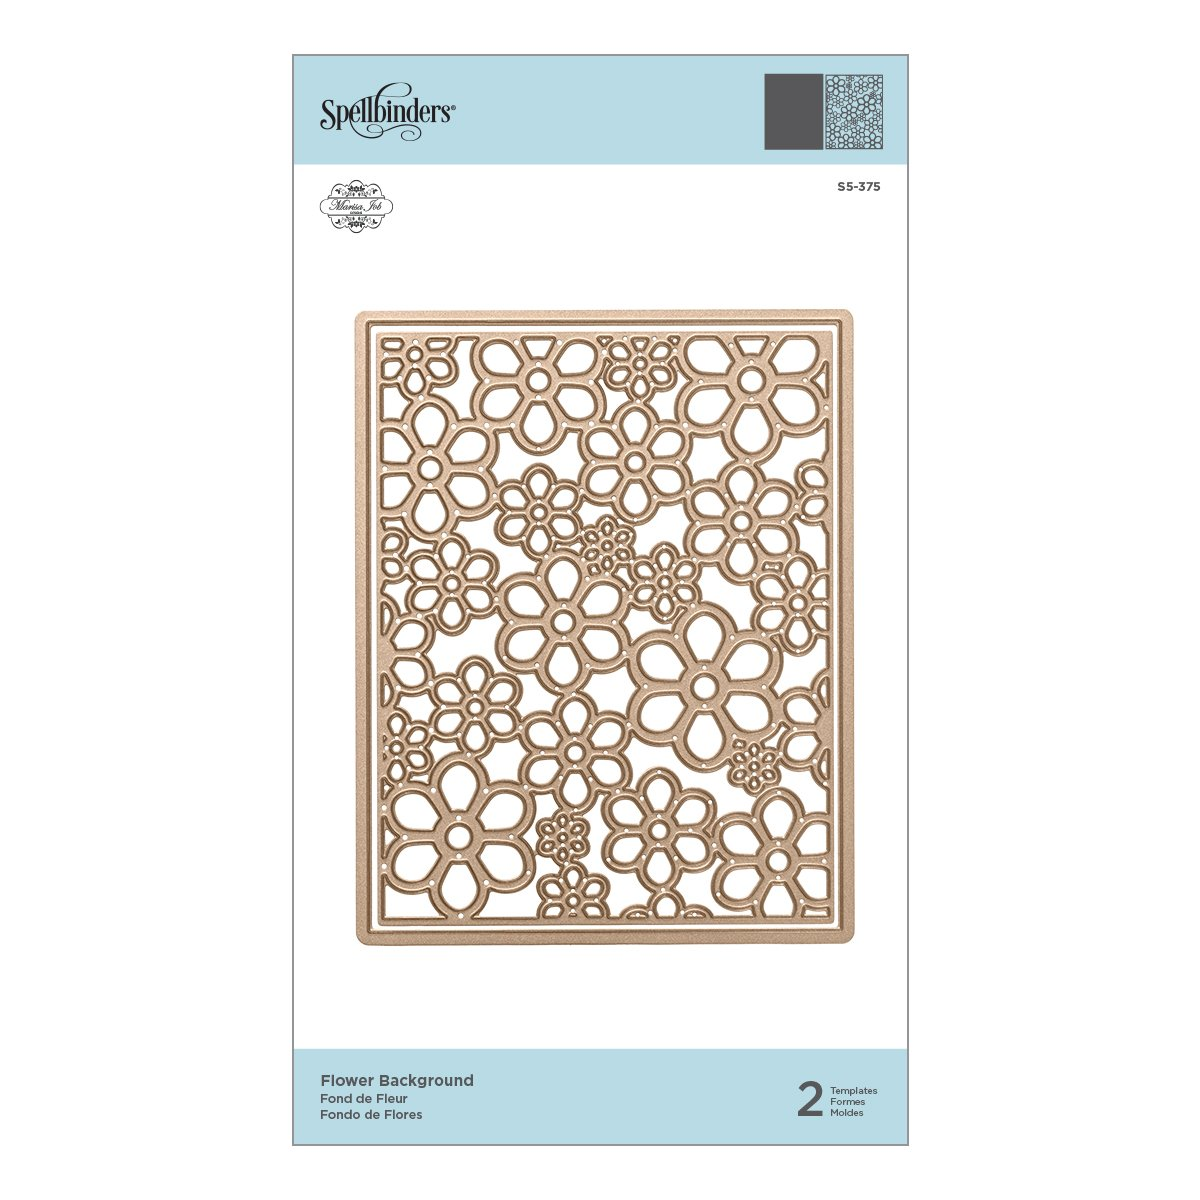 Amazon.com: Spellbinders S5-375 Shapeabilities Flower Background Etched/Wafer Thin Dies